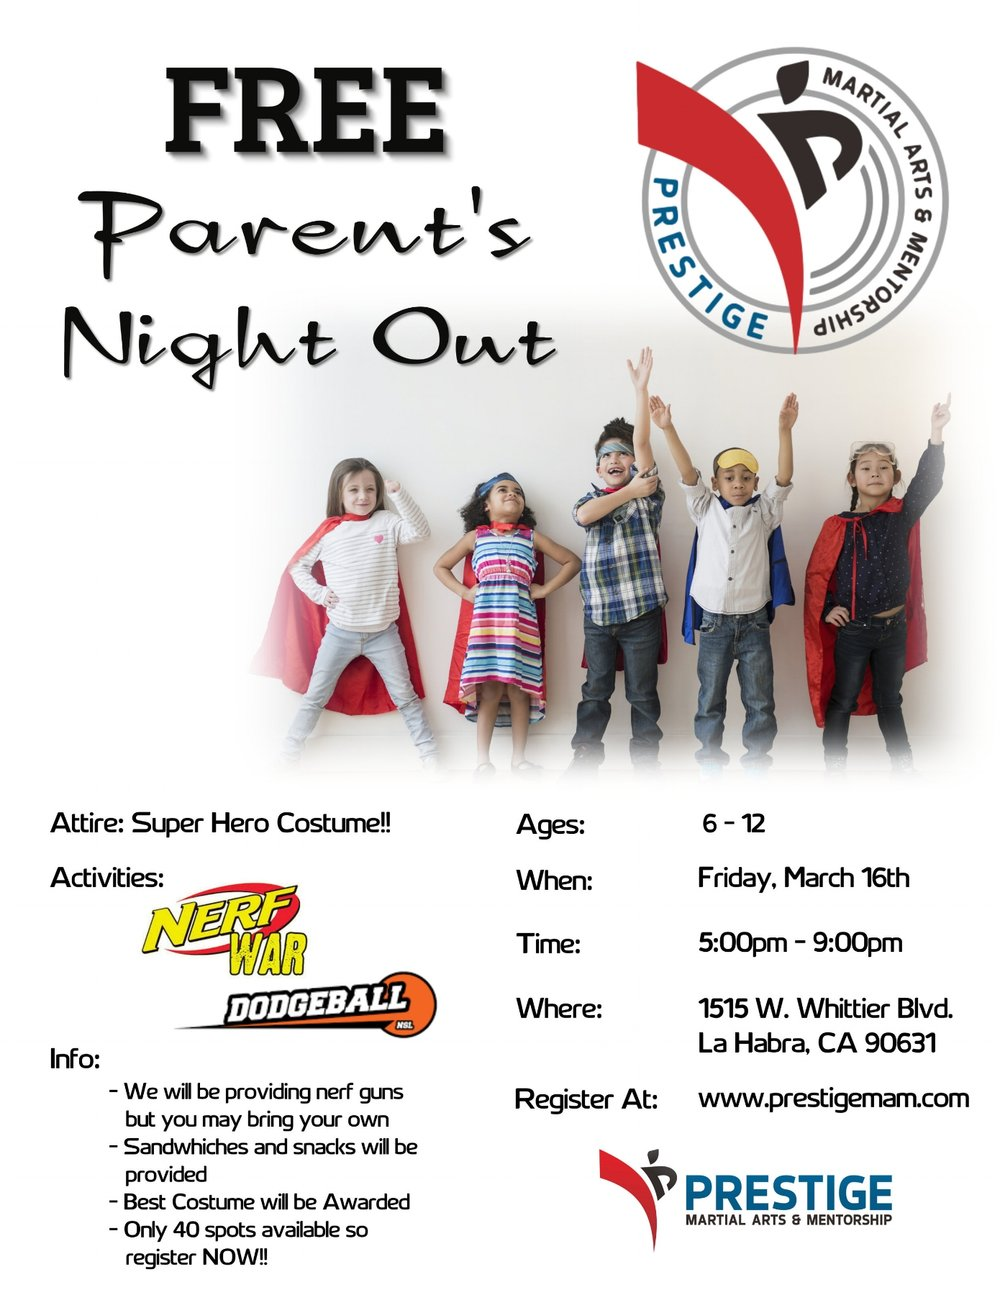 - Parents, come drop off your child for a fun event of exciting activities while you enjoy some well deserved free time. The event will consist of activities such as: nerf gun war, dodgeball, food and movie, all in a safe and controlled environment. Dress in your favorite super hero costume, or custom make one yourself. The best costume will be awarded with a secret surprise! Register on Eventbrite:https://prestigepno.eventbrite.com